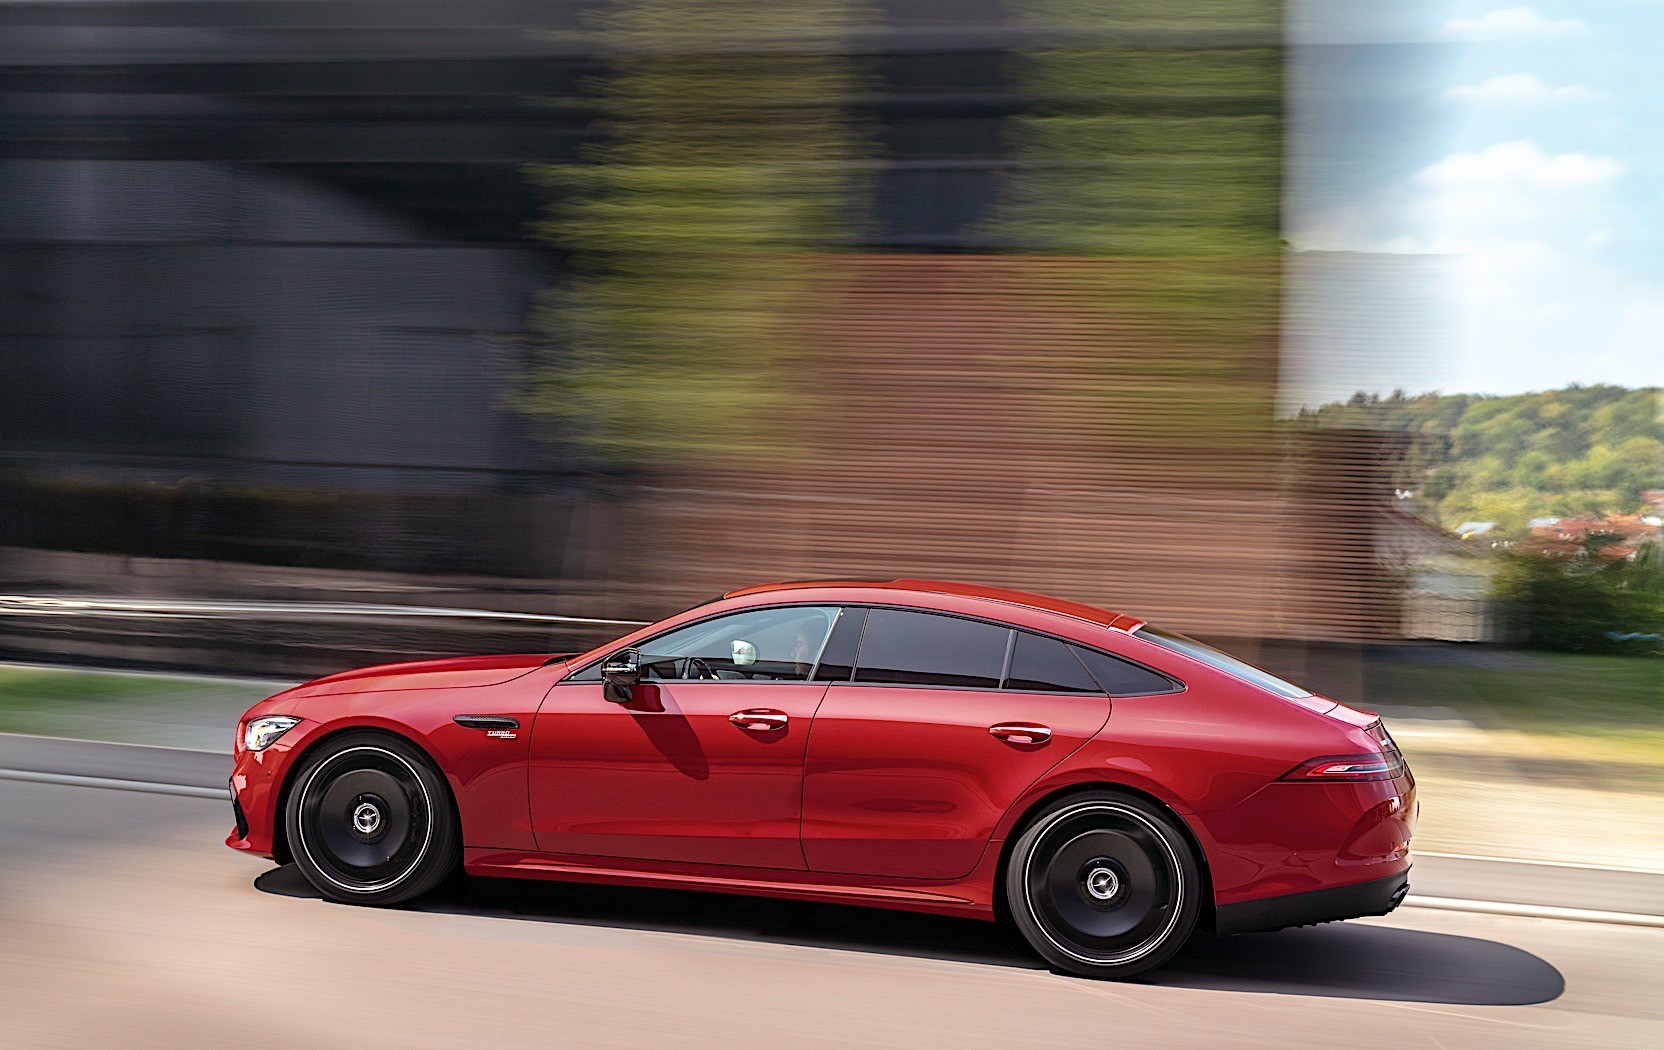 2019 mercedes amg gt 4 door coupe get new entry engine priced from 95 259 euros autoevolution. Black Bedroom Furniture Sets. Home Design Ideas